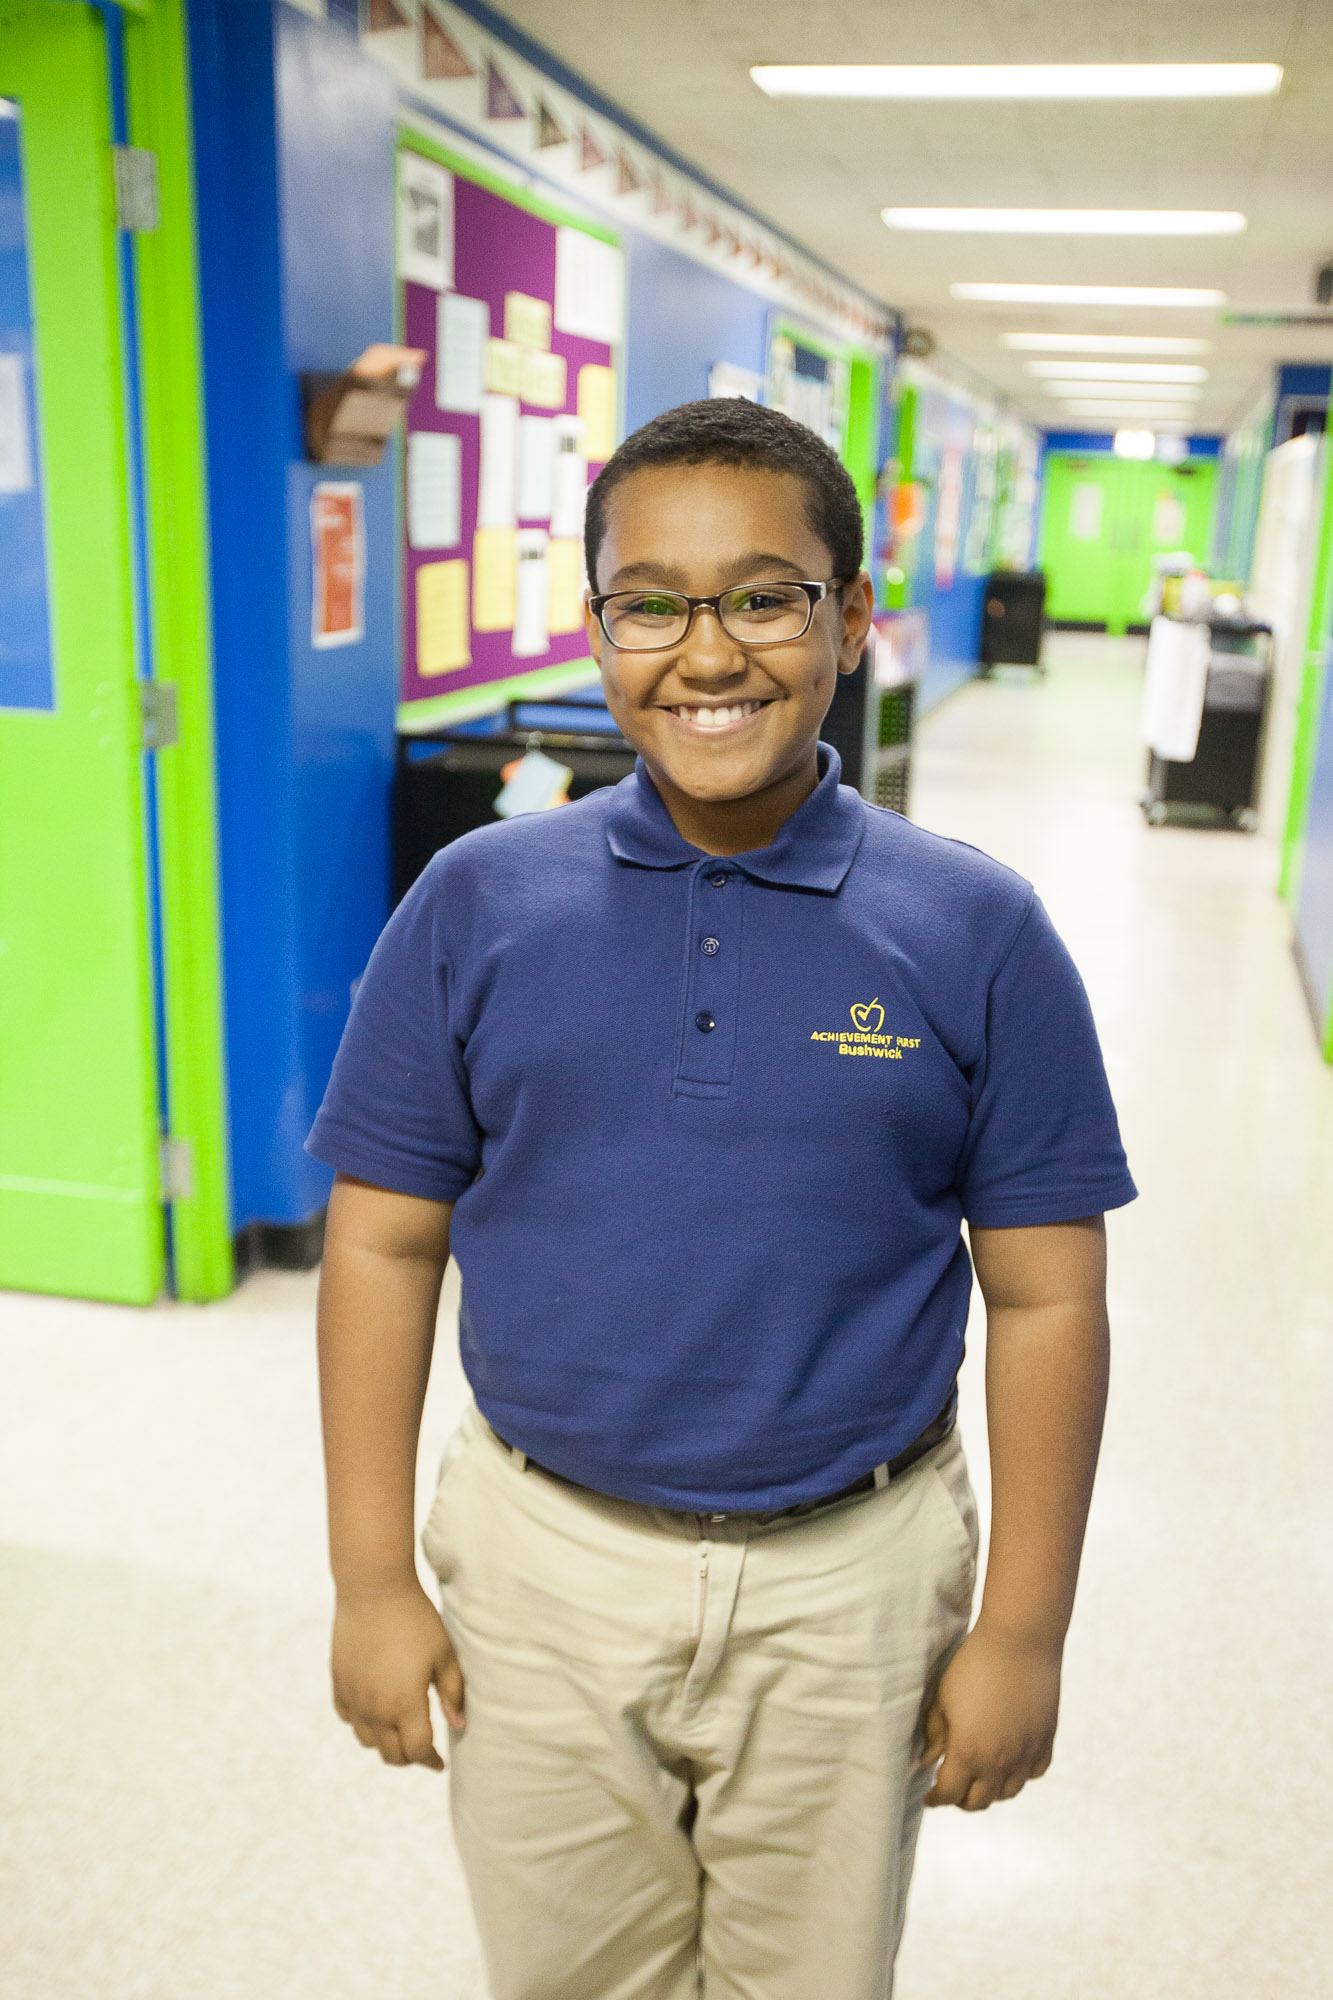 Fifth grade student Clive Campbell at Achievement First Charter School in Bushwick, Jan 30, 2014. (Petr Svab/Epoch Times)